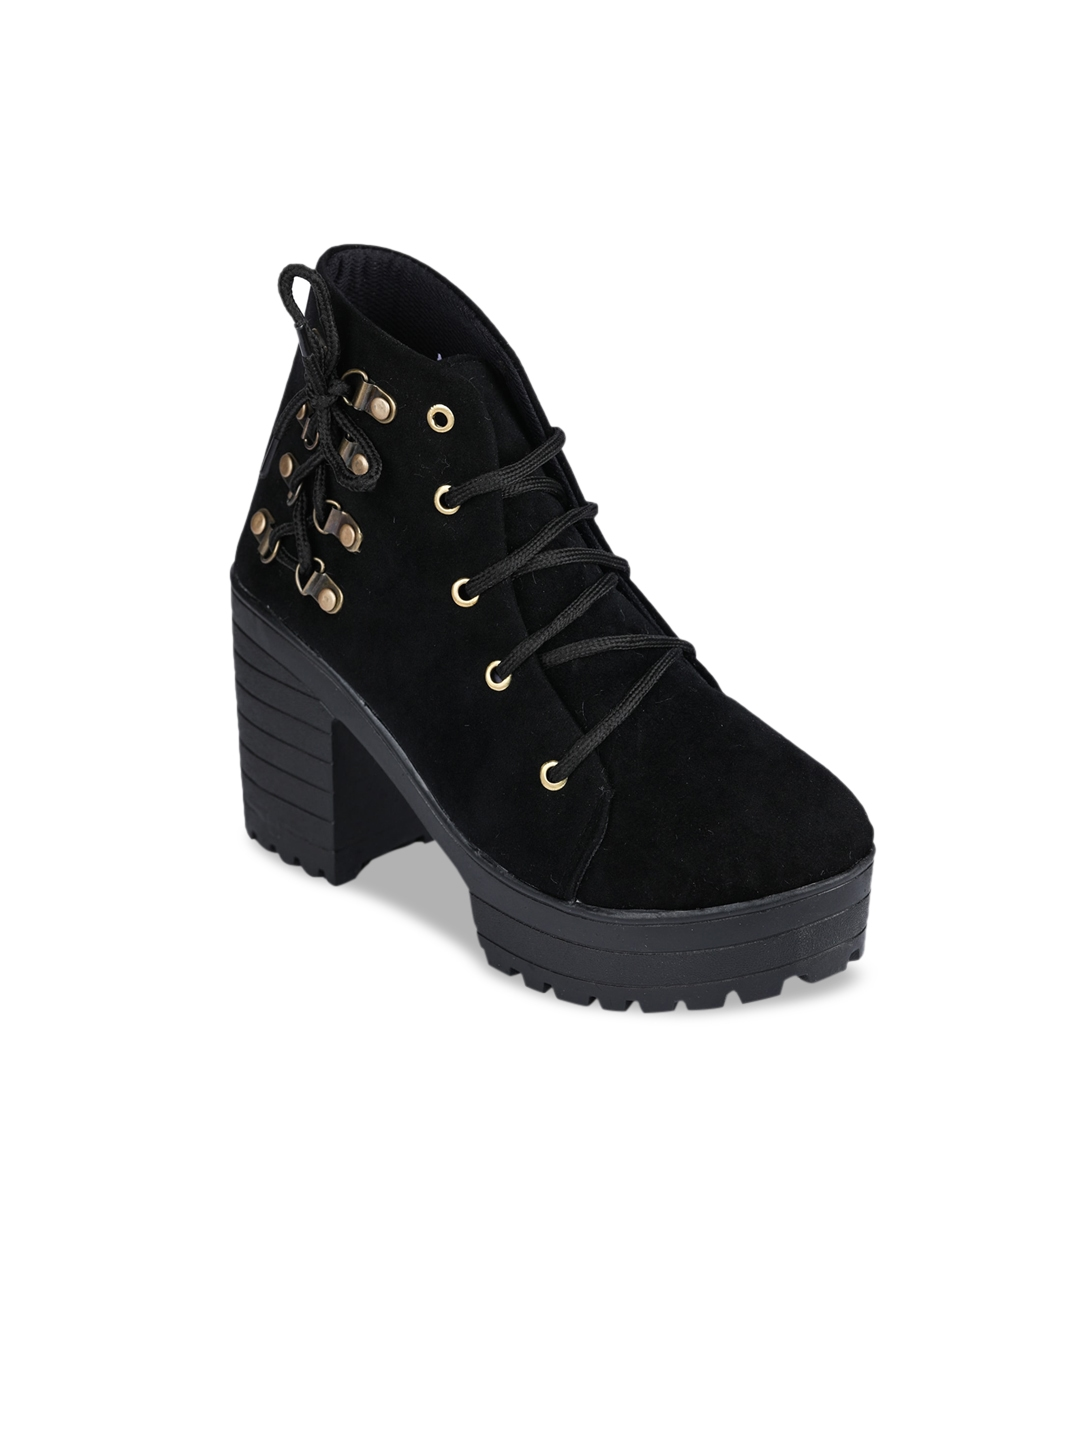 Funku Fashion Women Black Solid Suede Mid Top Heeled Boots